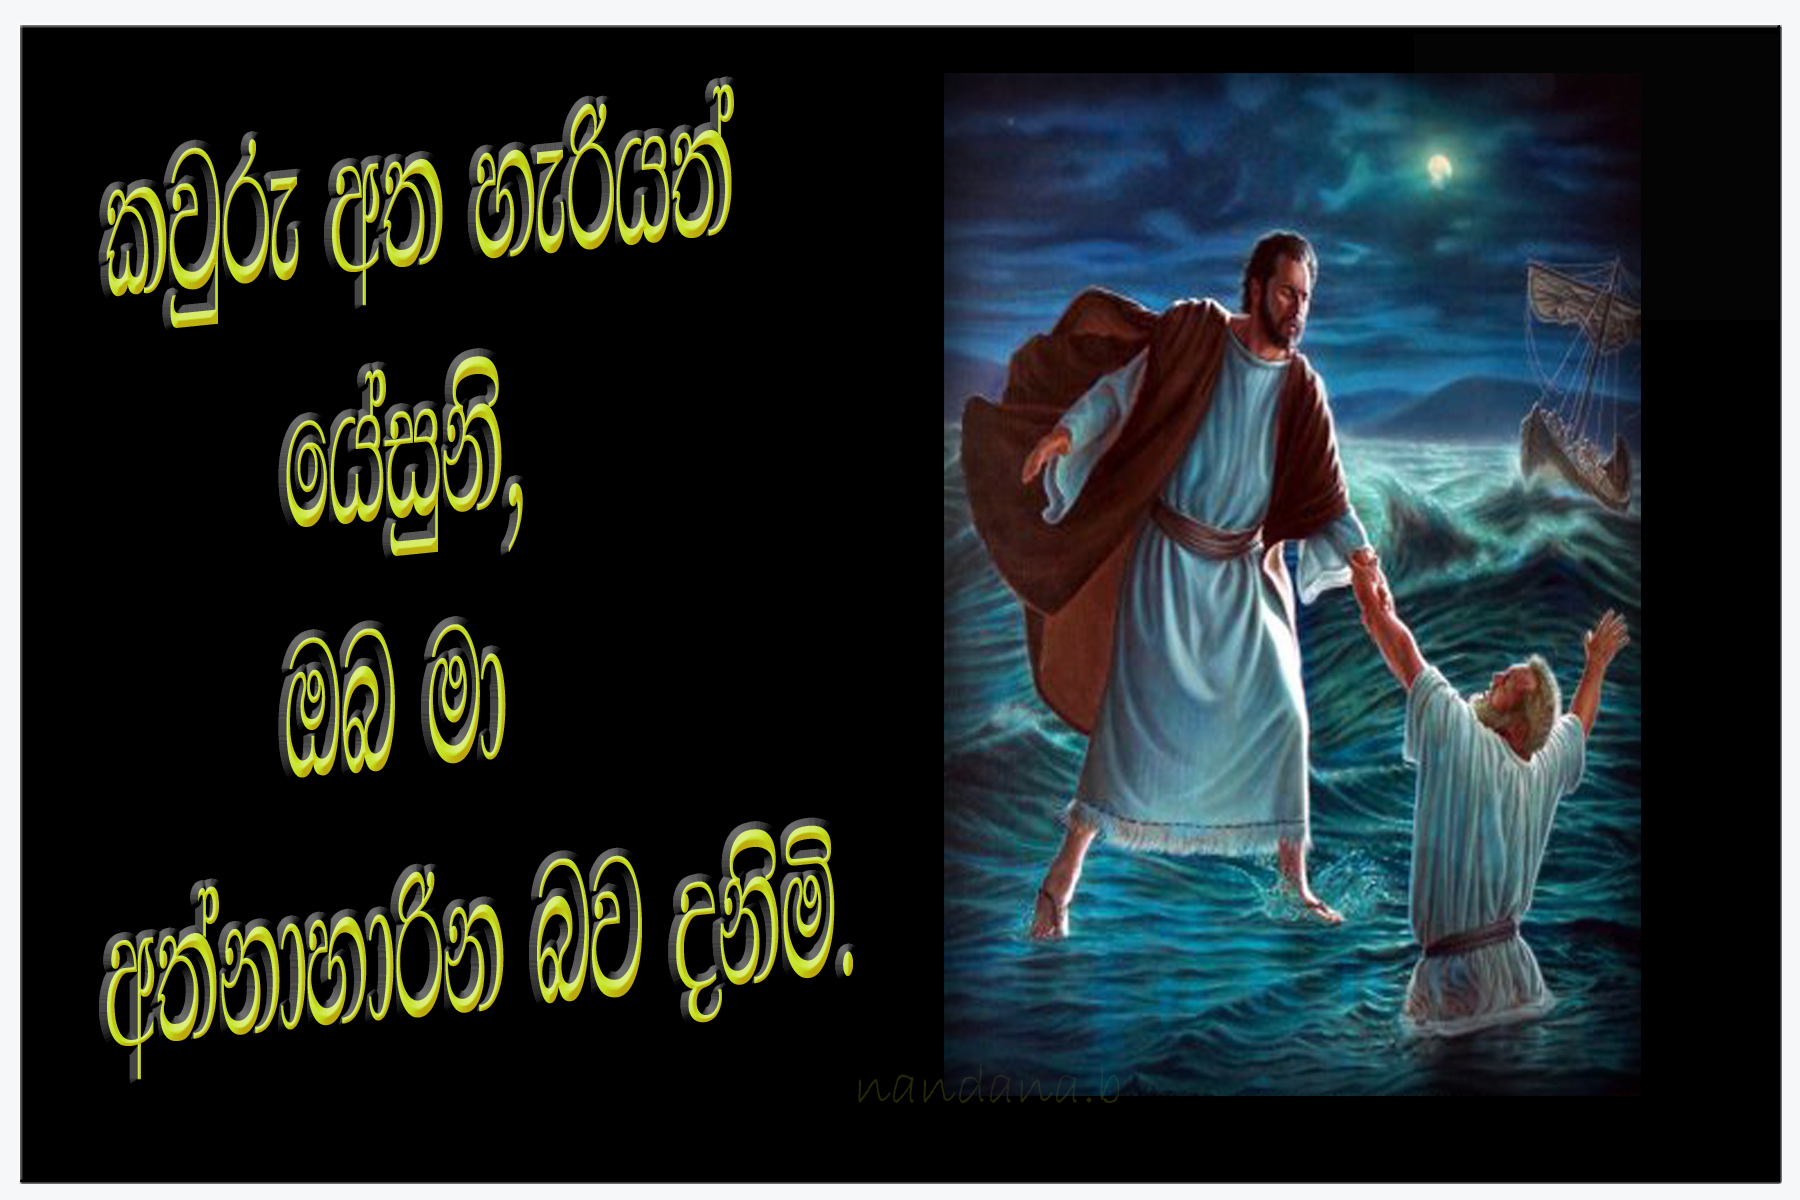 Sad Love Quotes Wallpapers Free Download In Hindi Download Sinhala Bible Words Wallpaper Gallery